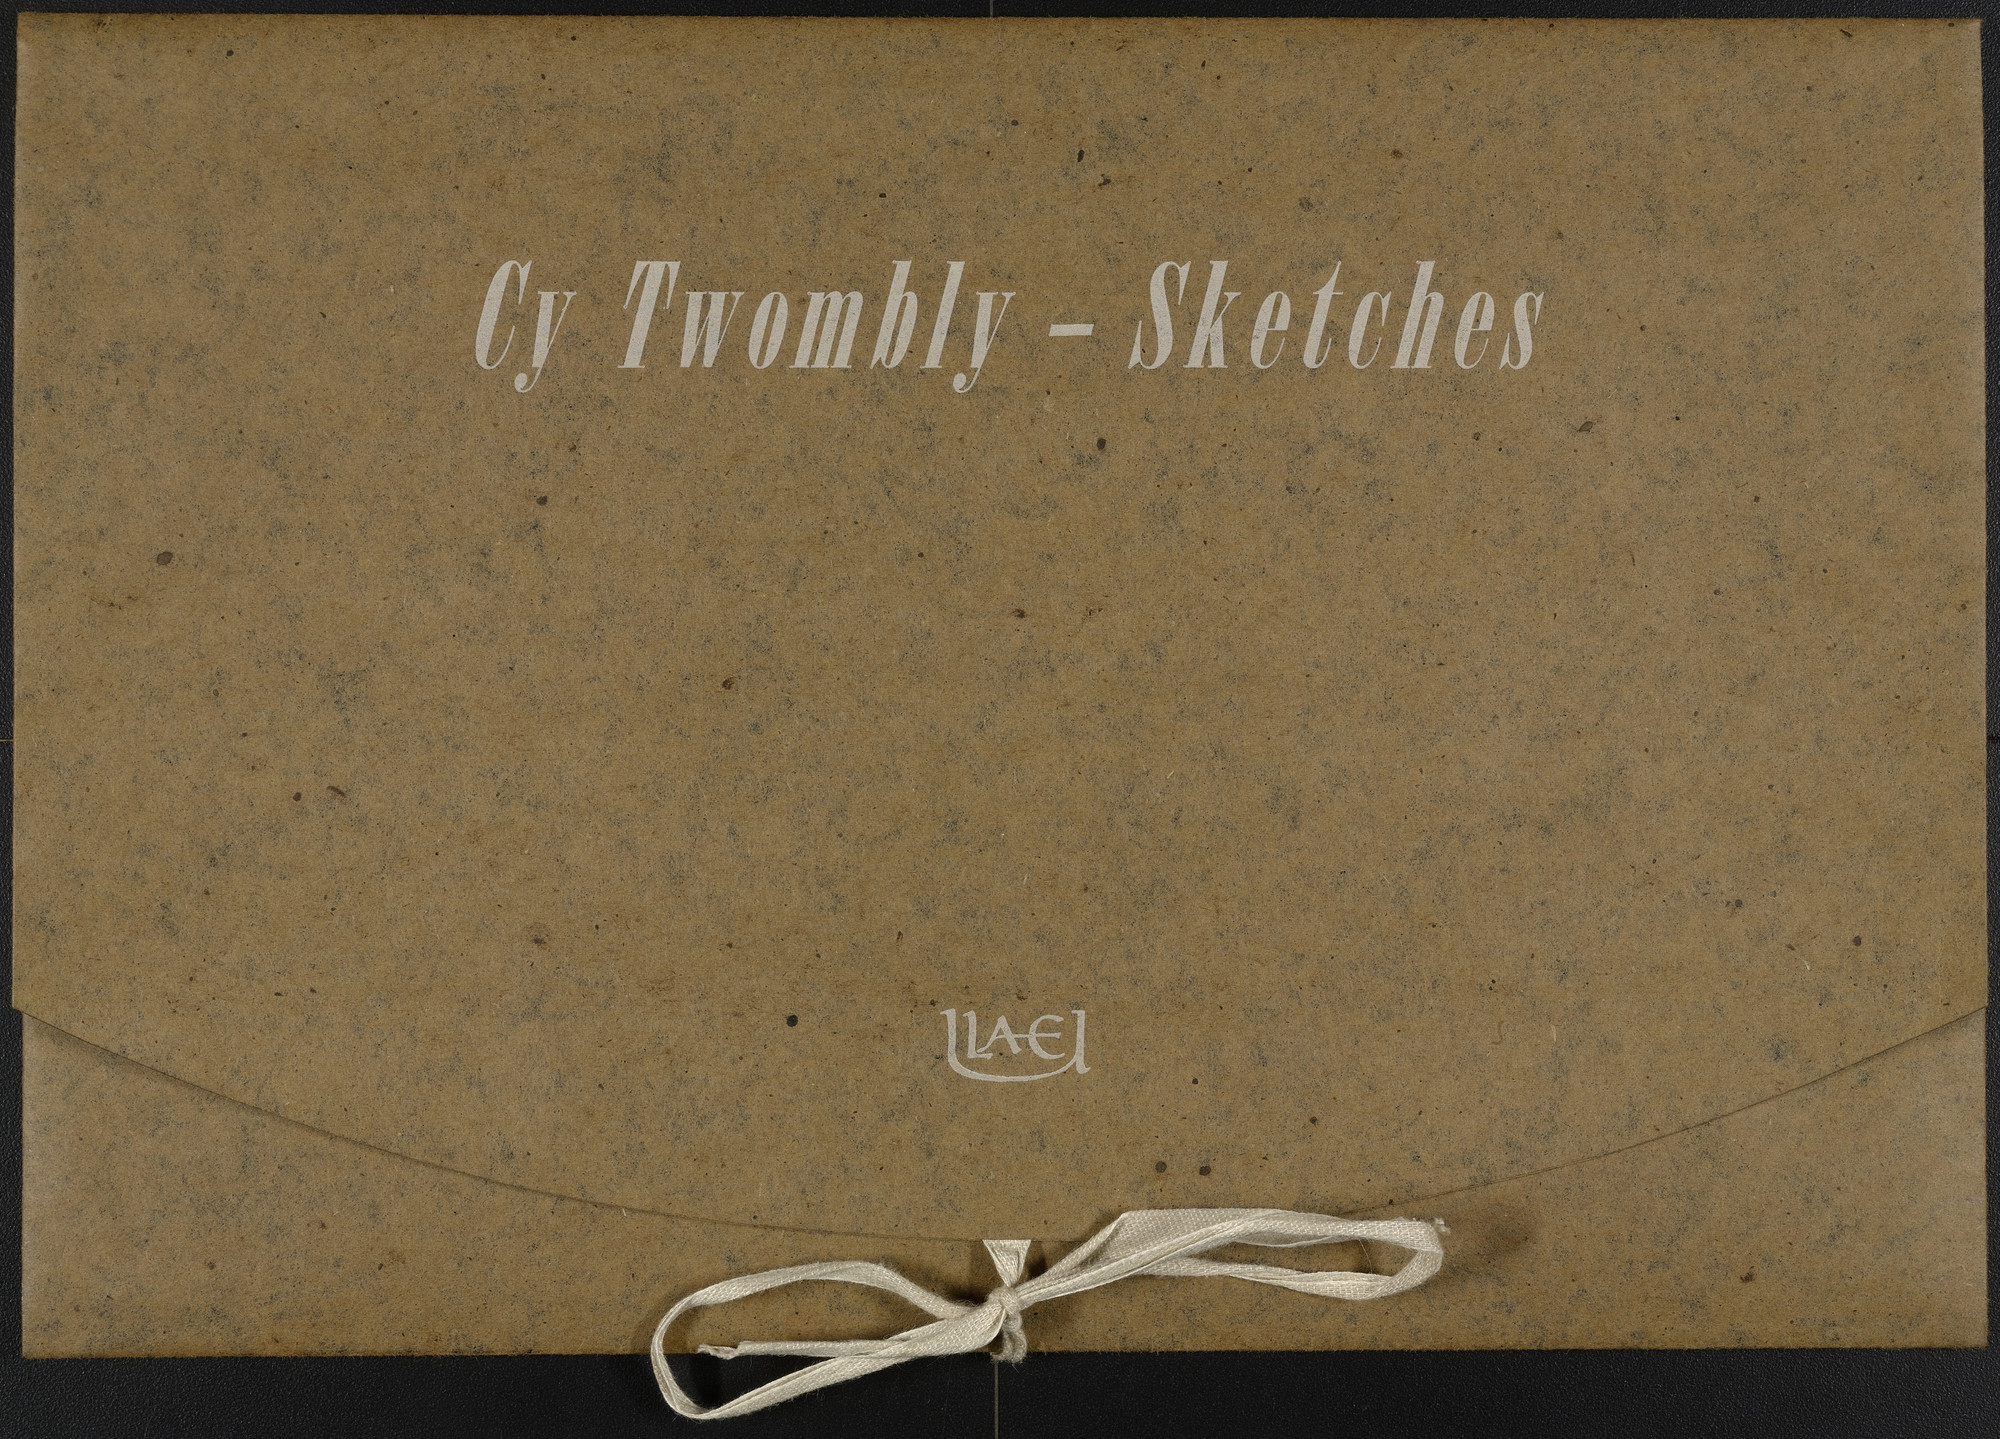 Cy Twombly. Sketches. 1967, published 1975